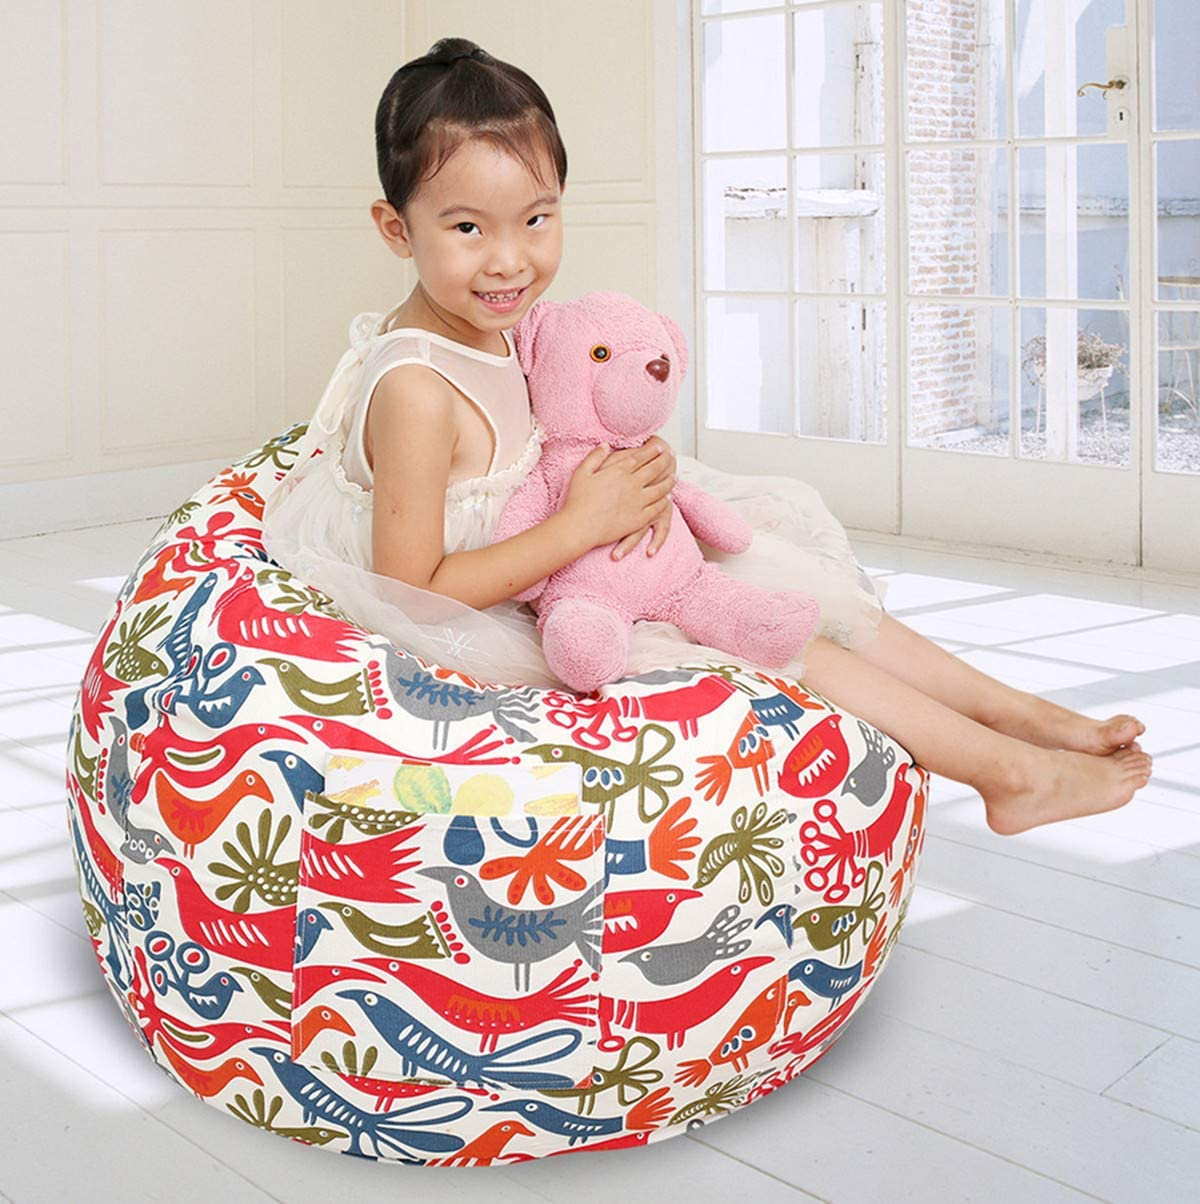 Great Eagle Stuffed Animal Storage Bean Bag Chair Cover|38X38 Inches Extra Large|100% Cotton Canvas | Bean Bag Chair for Kids, Toddlers and Teens(Boys or Girls)|Toy Storage Bag|White/ Birds